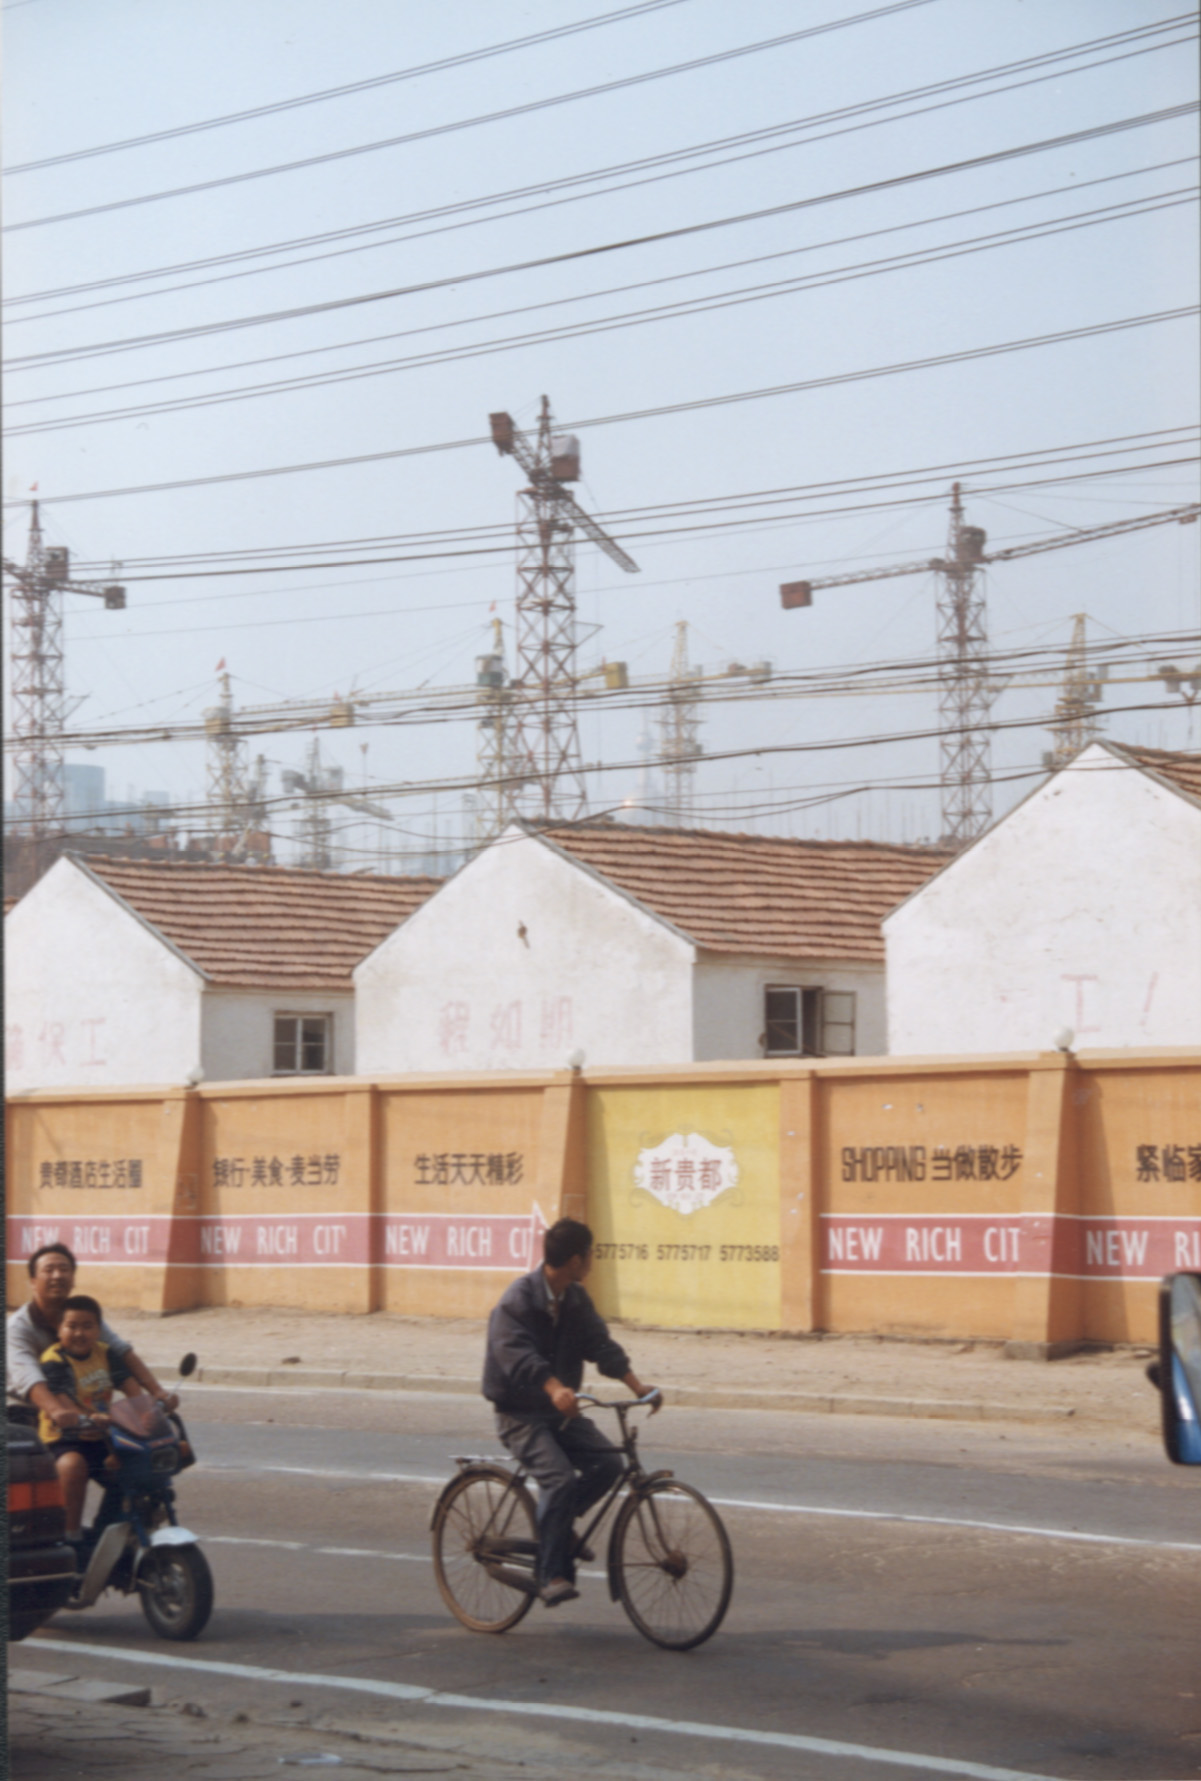 """New Rich City"", construction site in Qingdao, October 2000"